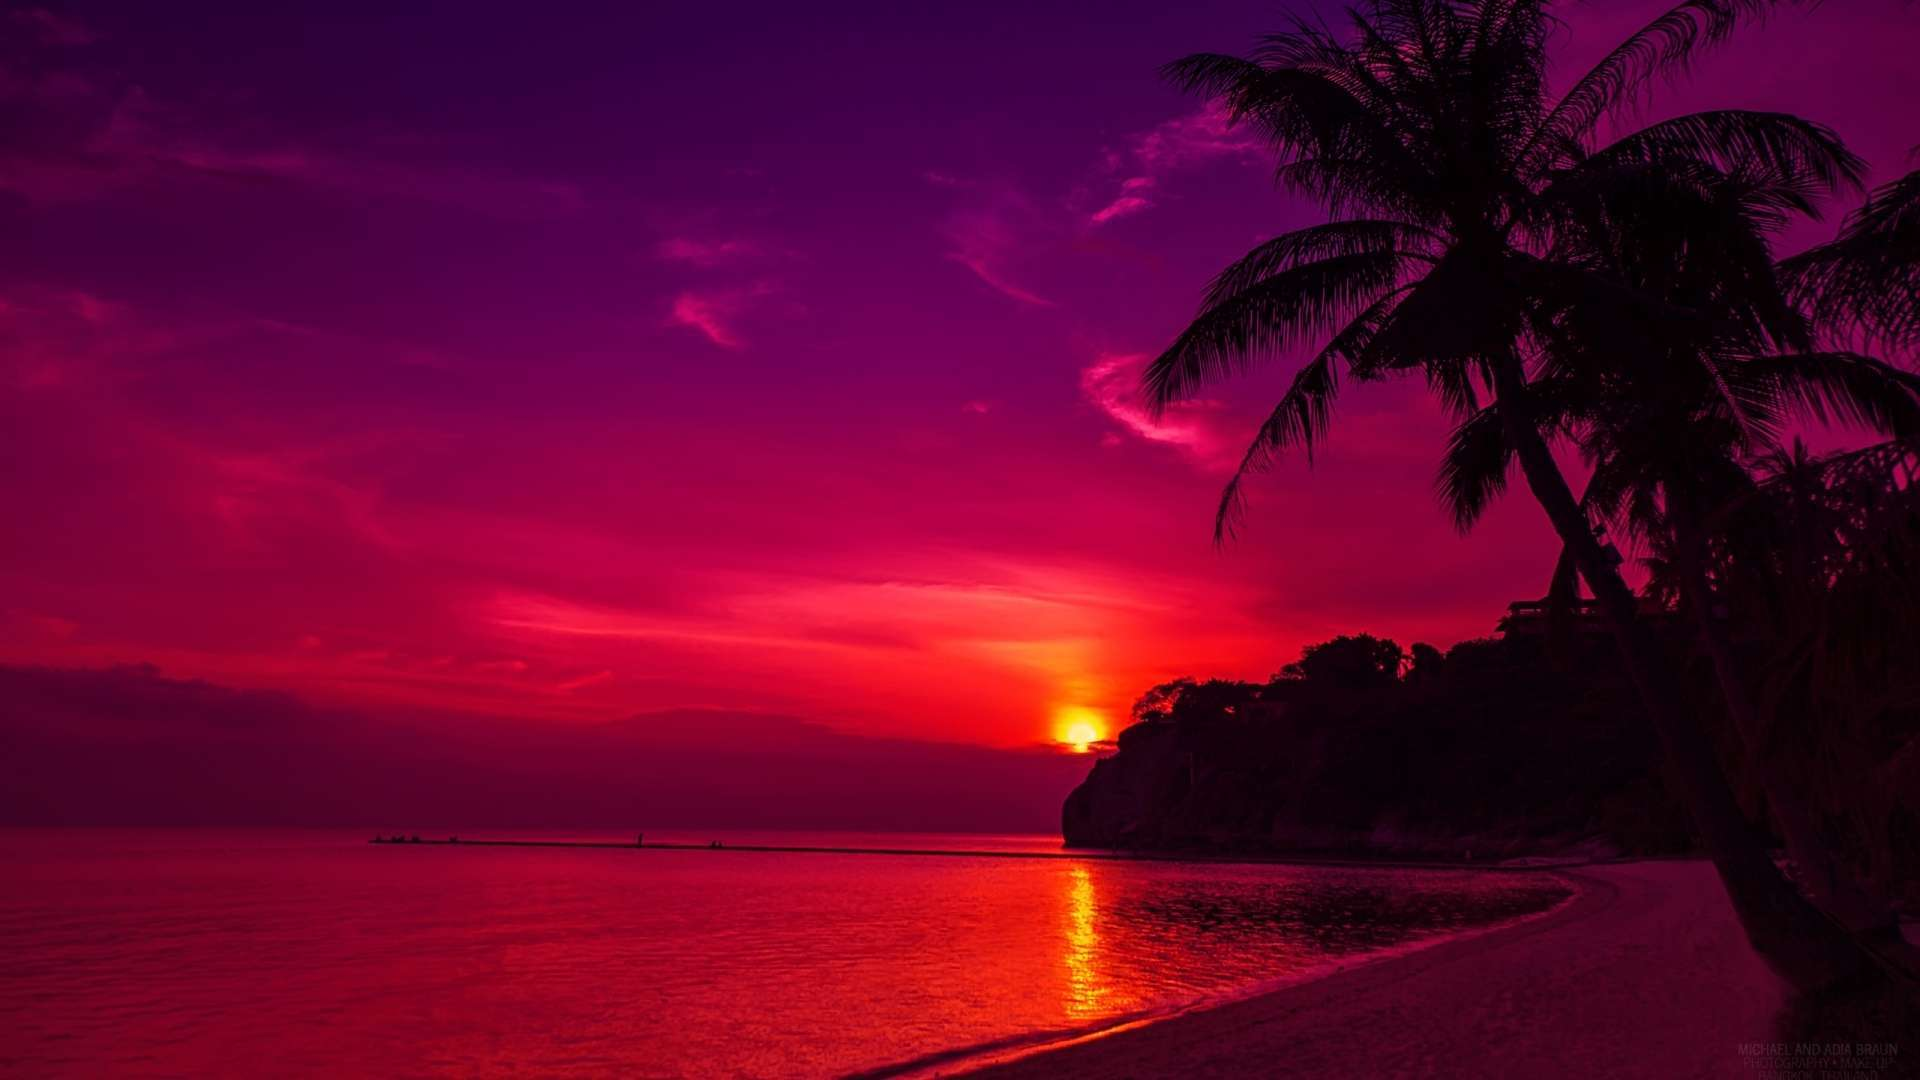 Sunset Wallpapers HD 1920x1080